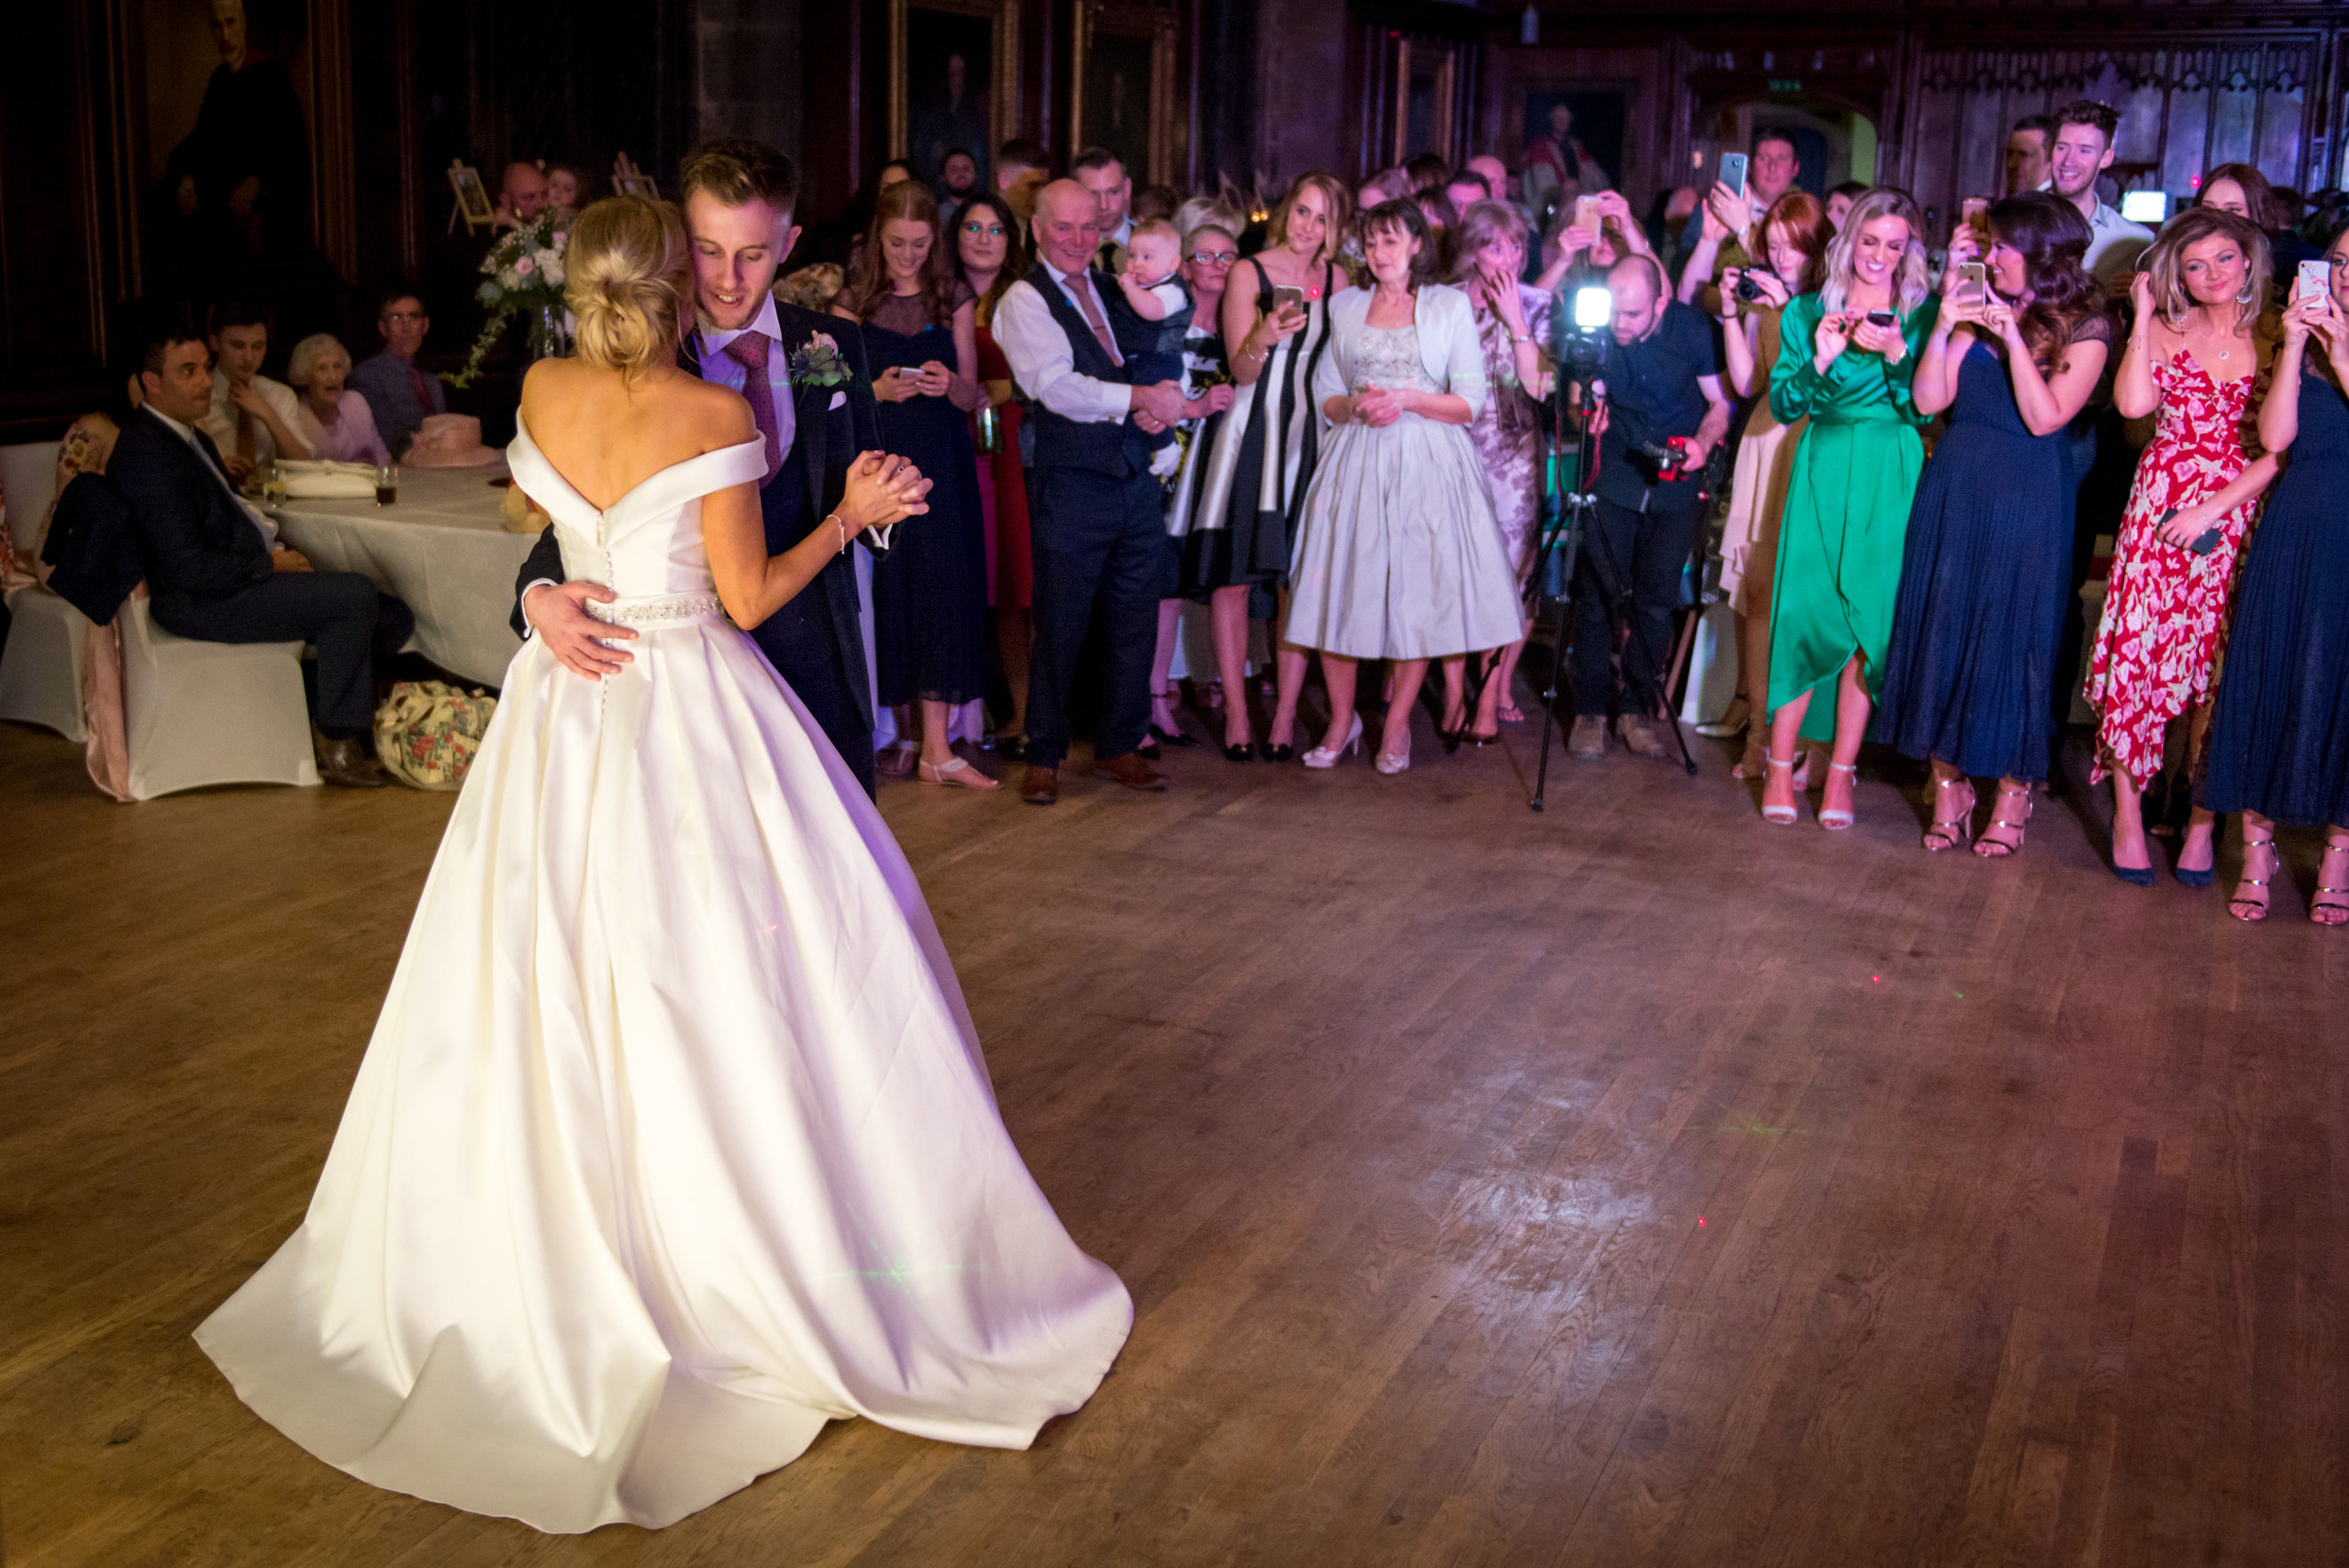 Photograph of bride and groom's first dance in Bishops Hall during wedding evening celebrations at historic venue Durham Castle in Durham City